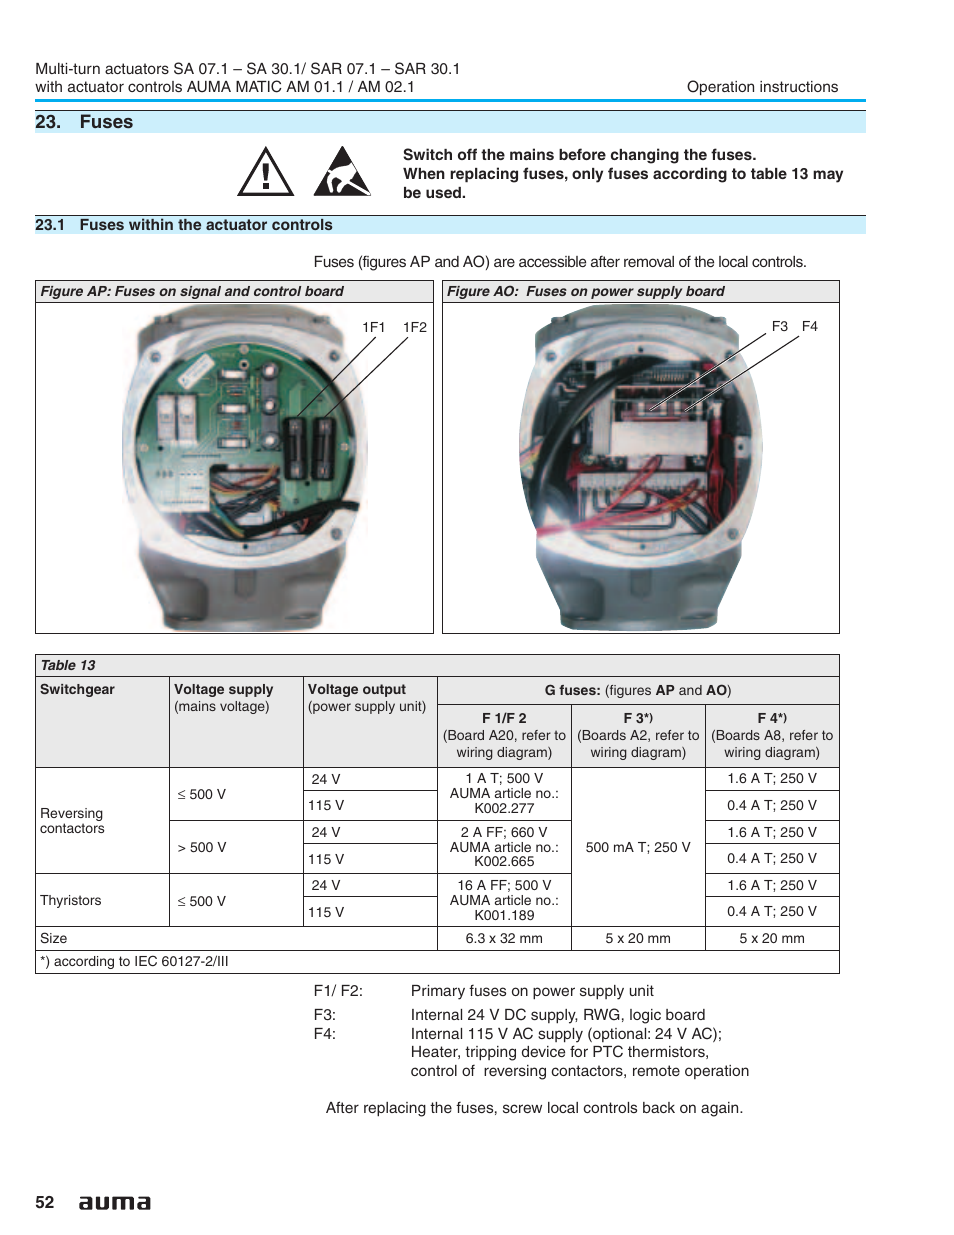 fuses 1 fuses within the actuator controls fuses 52 auma rh manualsdir com Leeson Electric Motor Wiring Diagram Auma Sg07.1 Wiring-Diagram